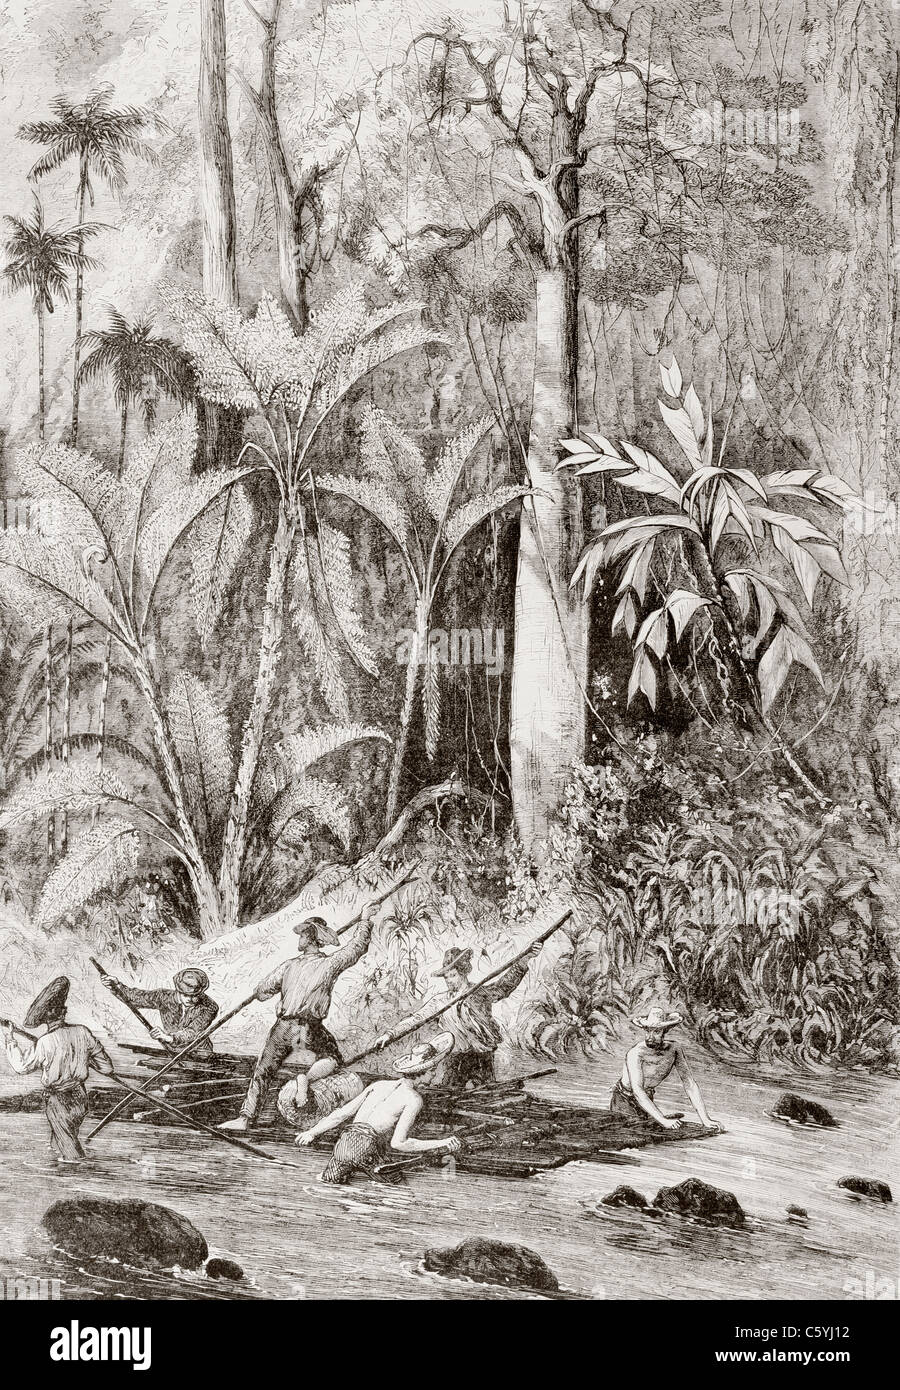 Expedition of 1867 searching for a route through Nicaragua for a trans-oceanic canal, led by Englishman Captain - Stock Image